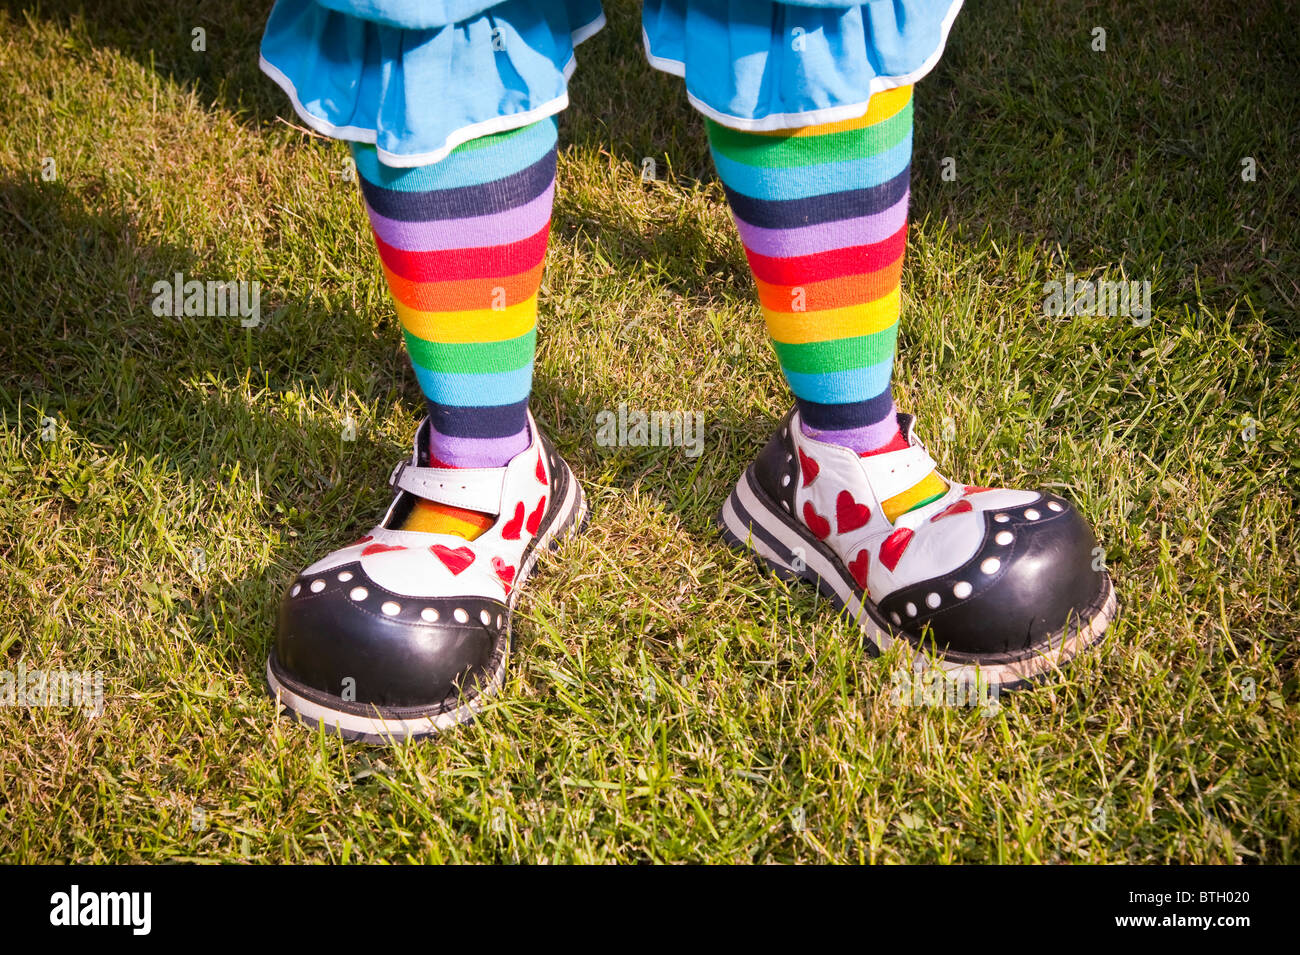 Clown shoes - Stock Image